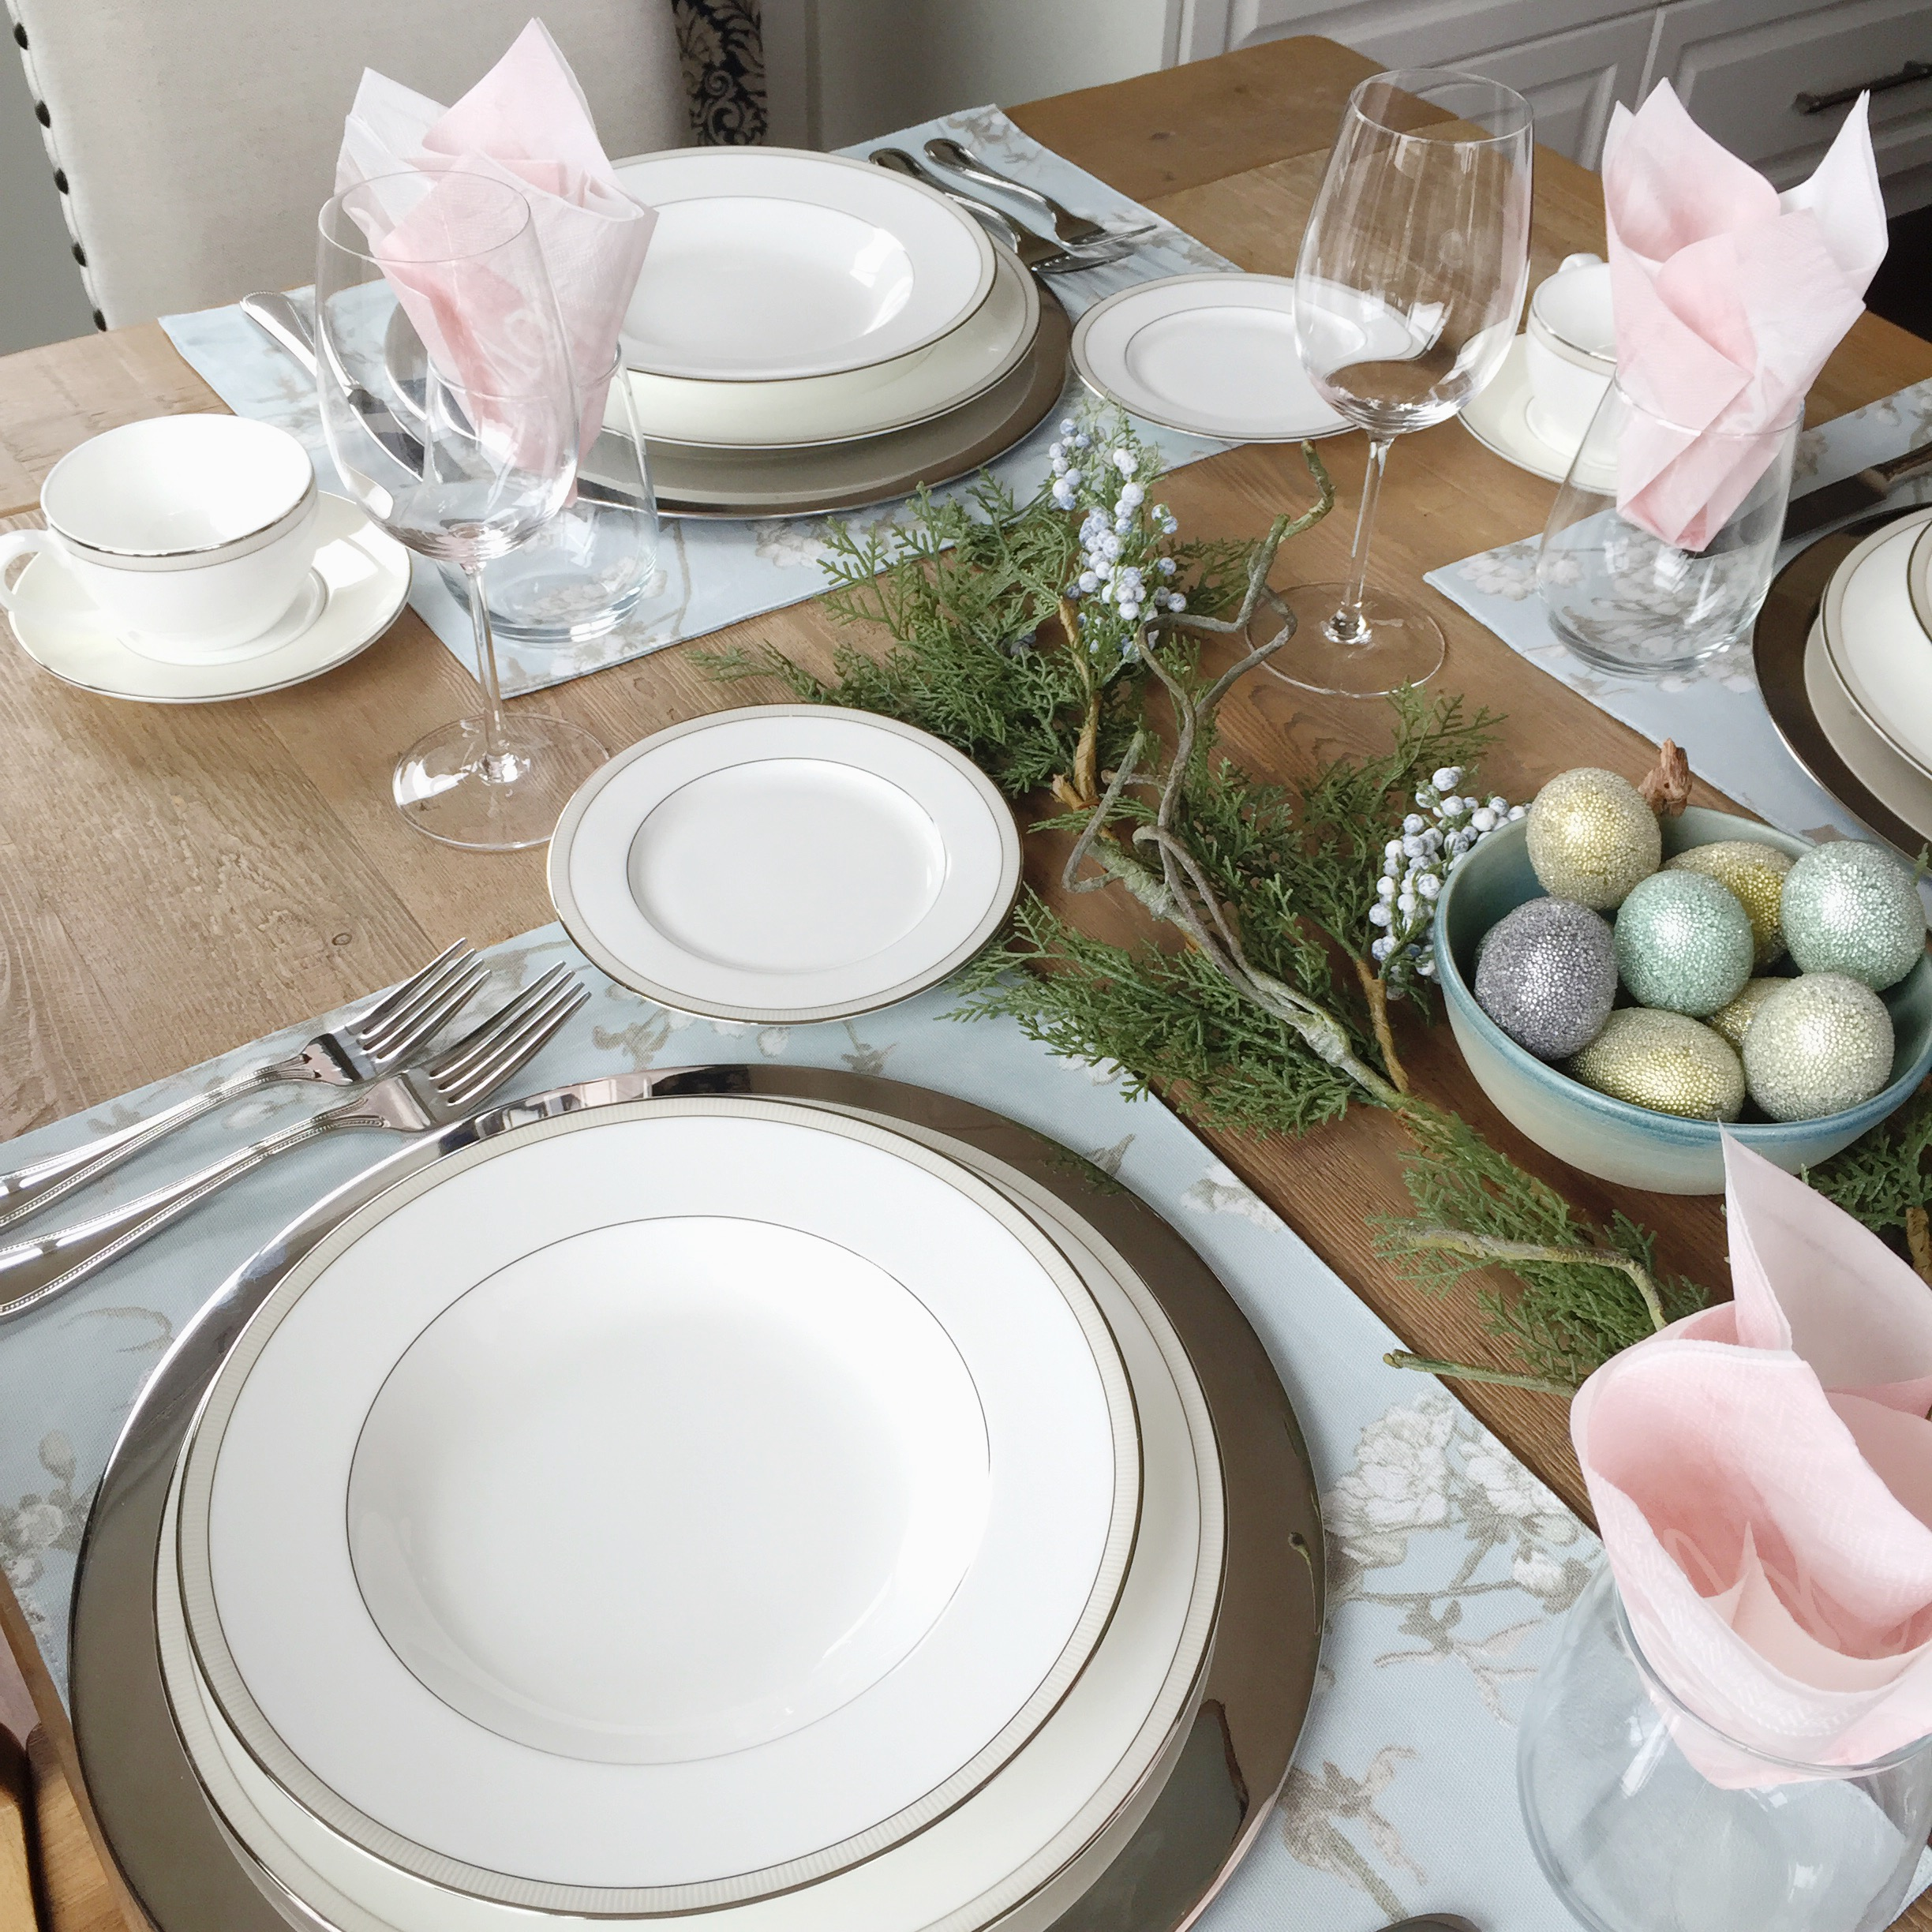 Easter Brunch Table Details Calvin Klein Wild Blossom Placemats u2013 HomeSense ($19.99 CAD) // CANVAS Cedar Blueberry Garland u2013 Canadian Tire // Stainless ... & 5 Easy Decorating Tips for Spring - The Shop Guide